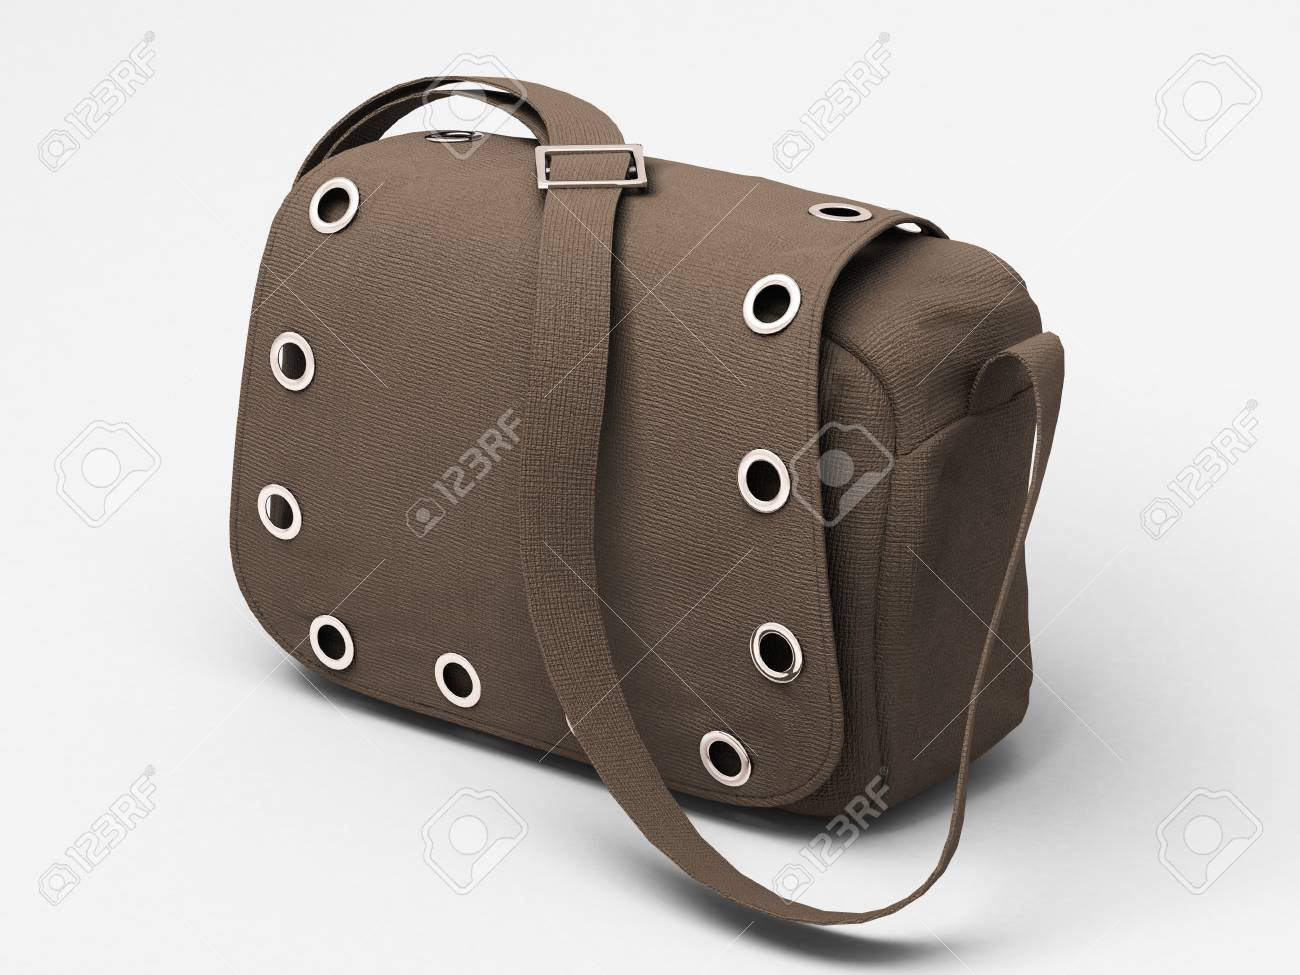 Women's grey handbag with studs on light background Stock Photo - 17476171